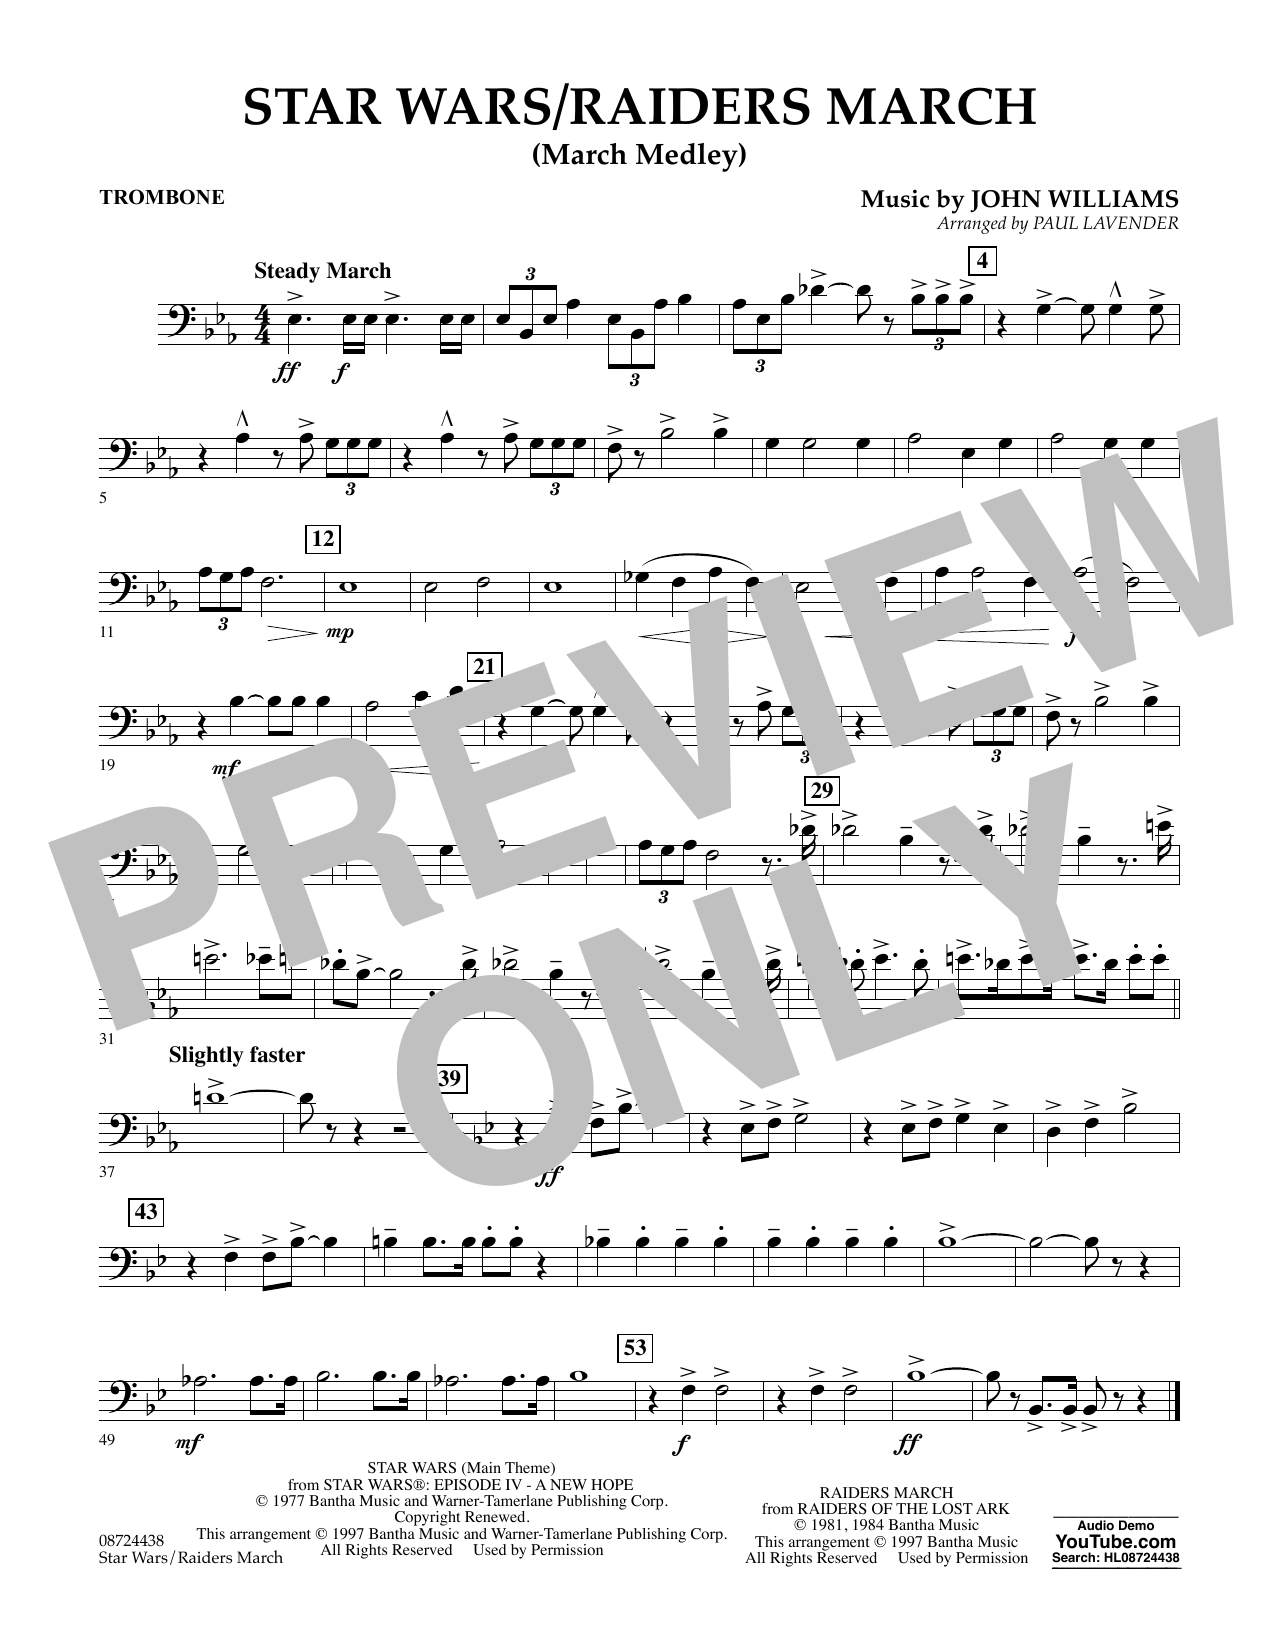 Star Wars/Raiders March - Trombone Sheet Music